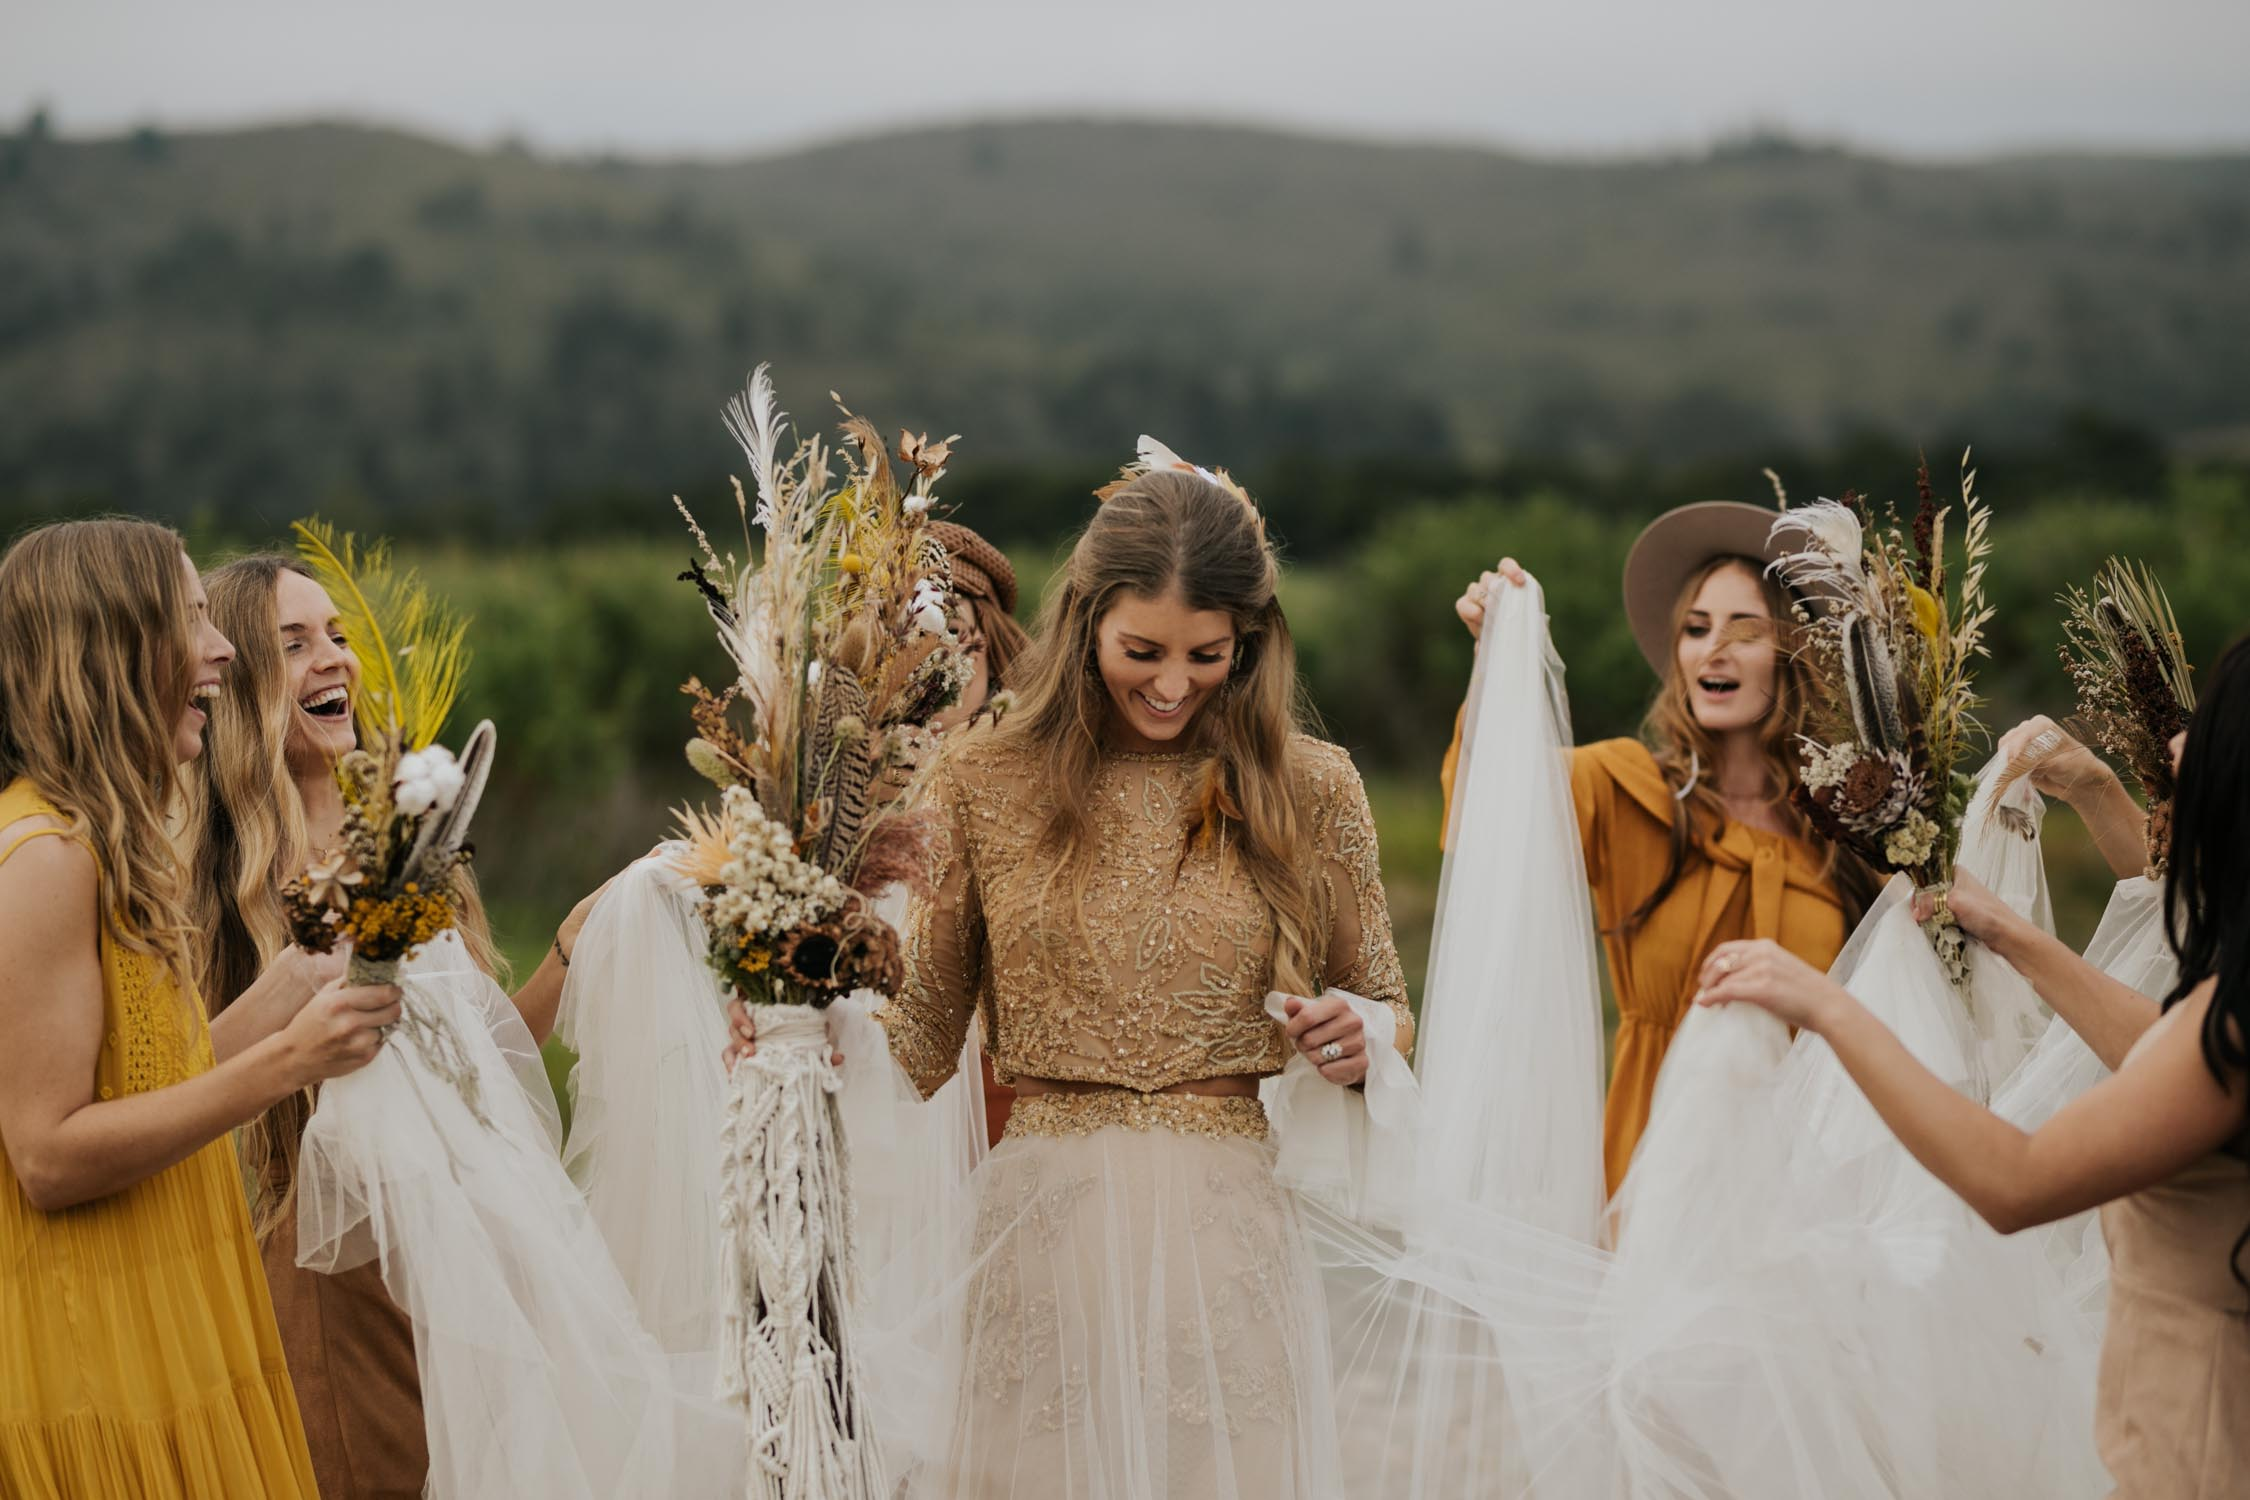 The ultimate boho gypsy bridesmaids outfits made of gypsy sunshine and rust coloured dresses and hats